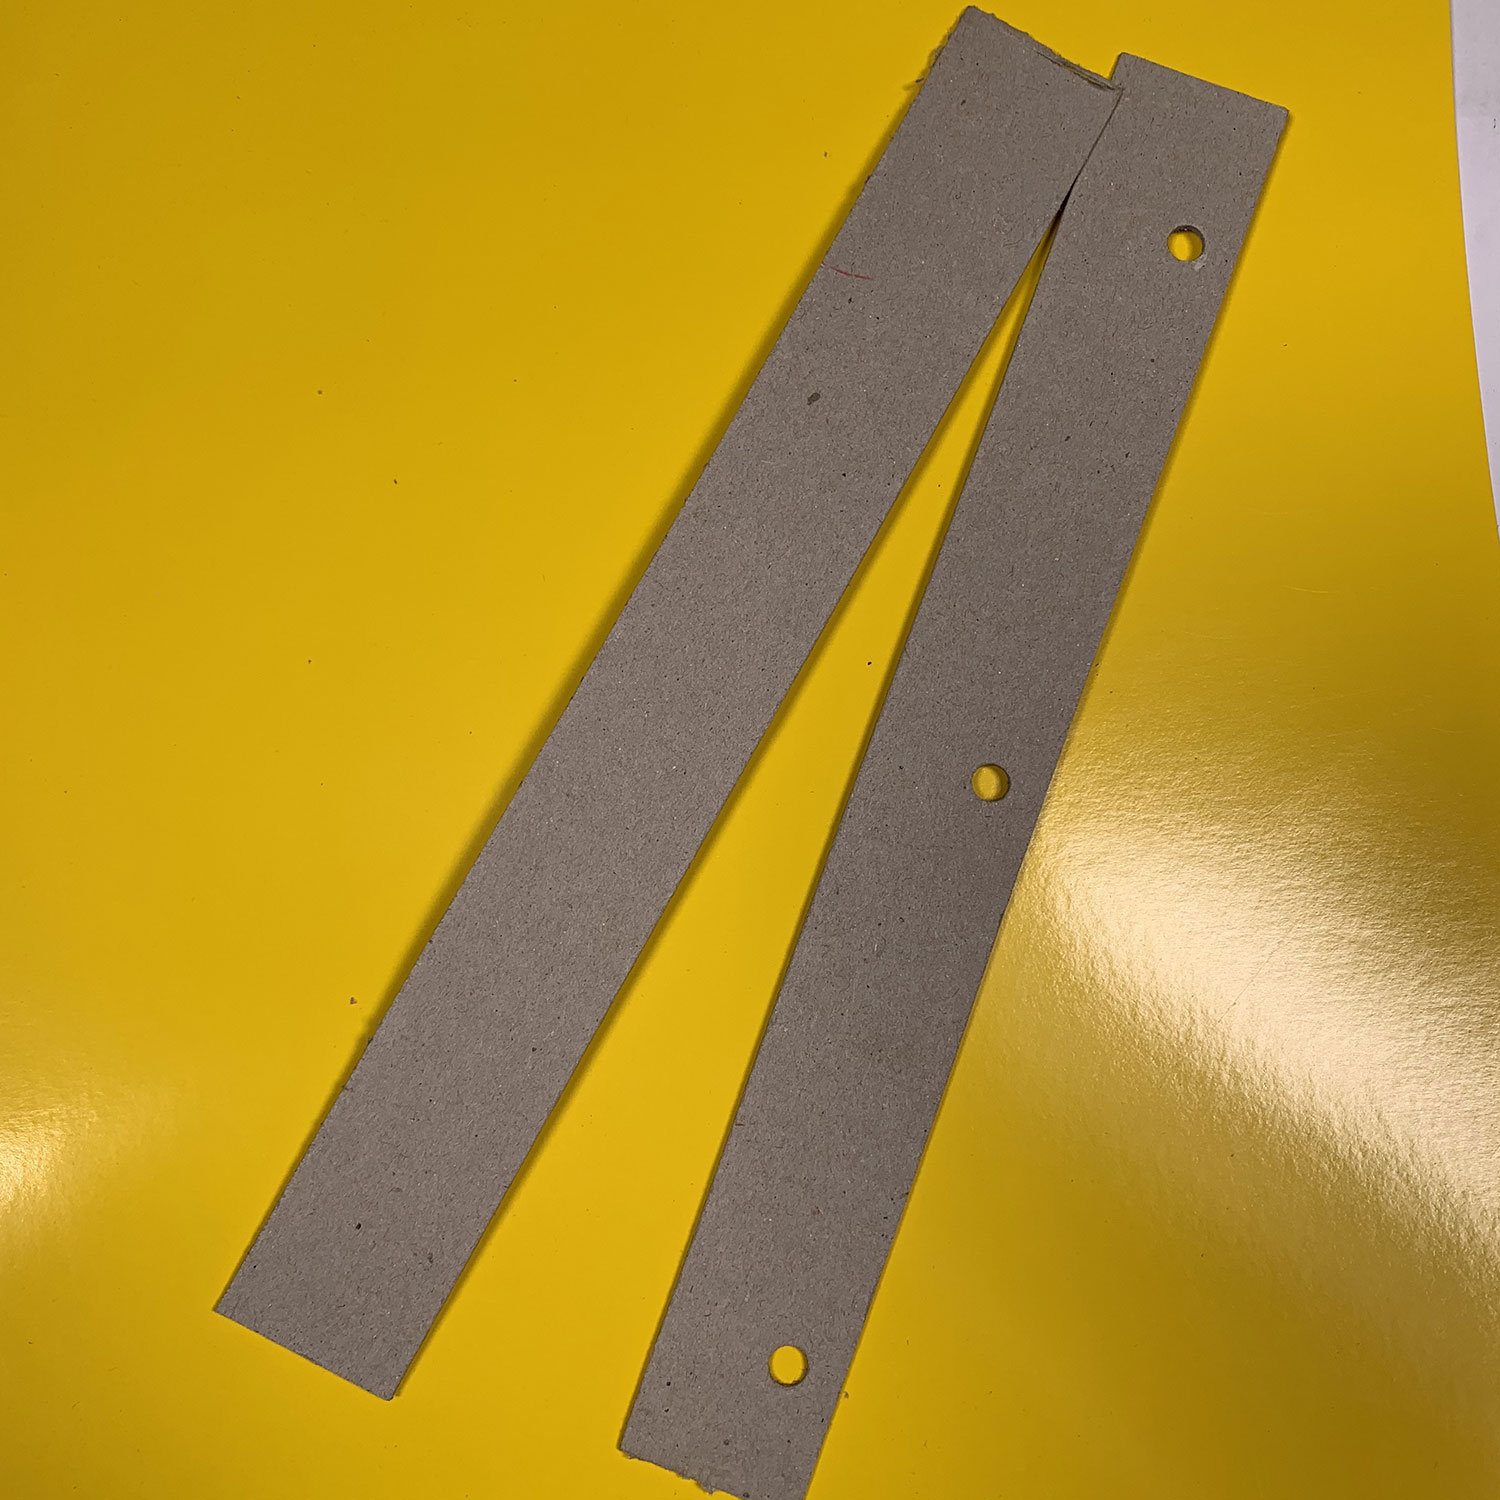 Step-by-step for making a pegbar